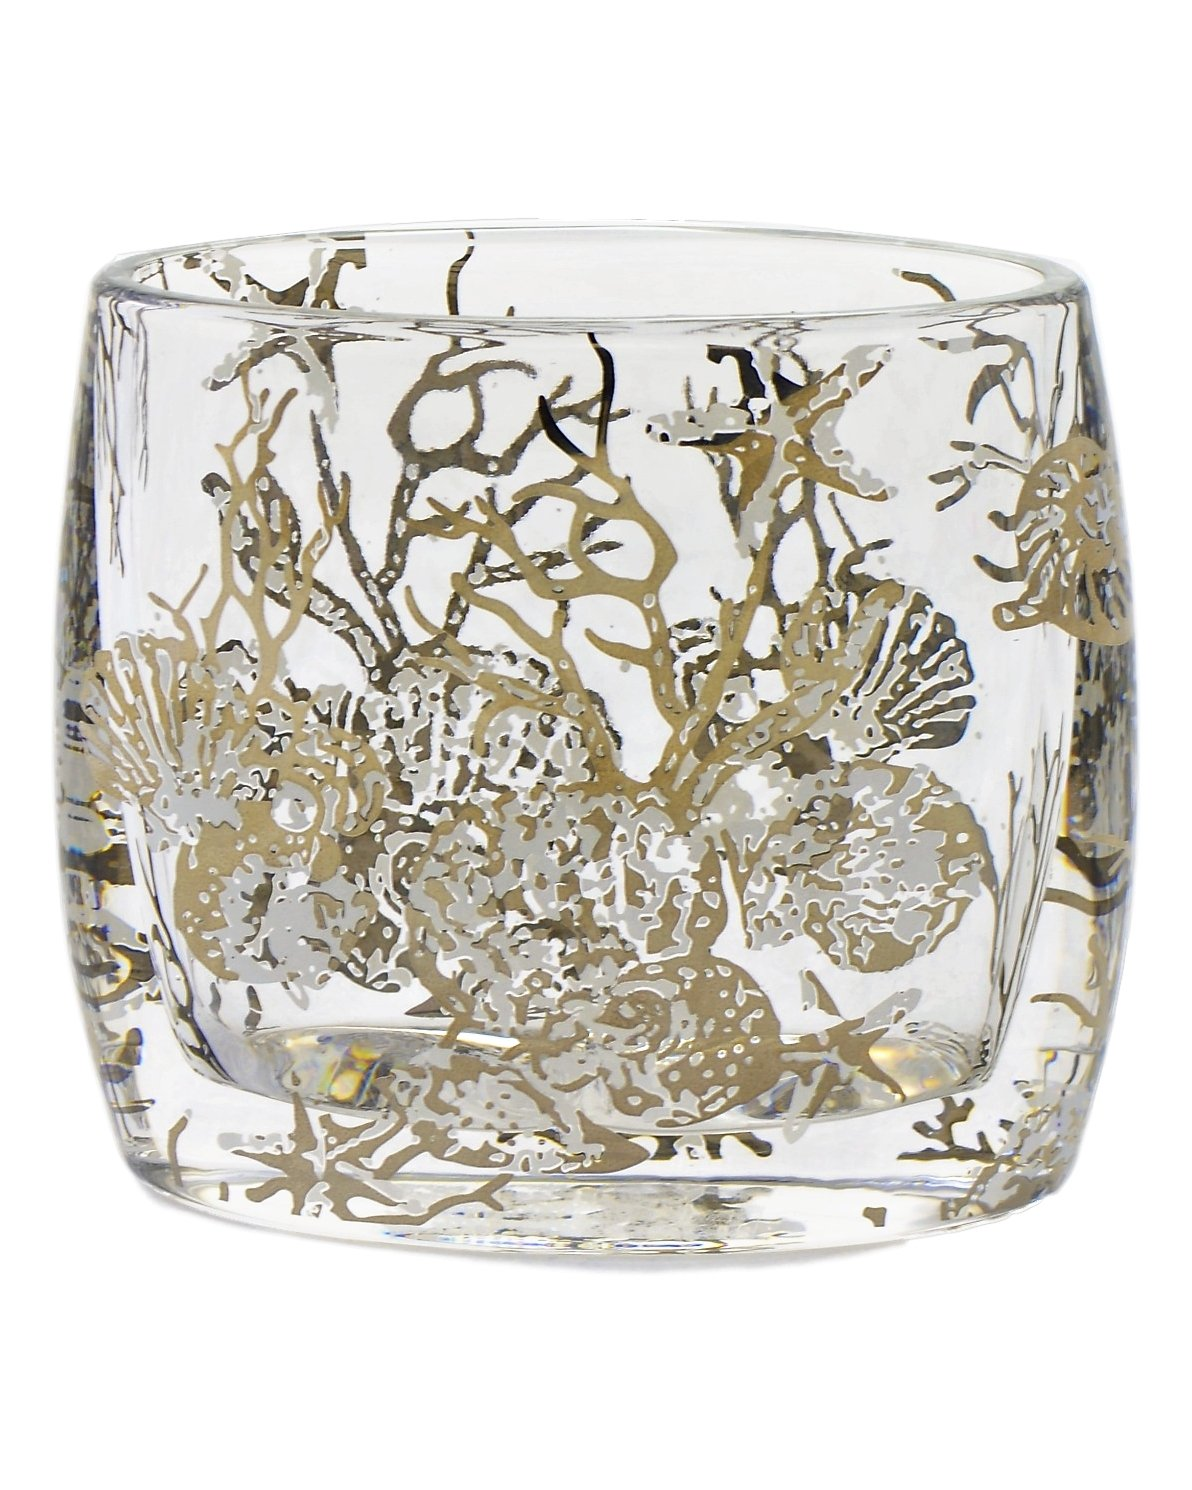 Thick Angus Glass Toothbrush Holder of Antlers Collection - Nature Home Decor